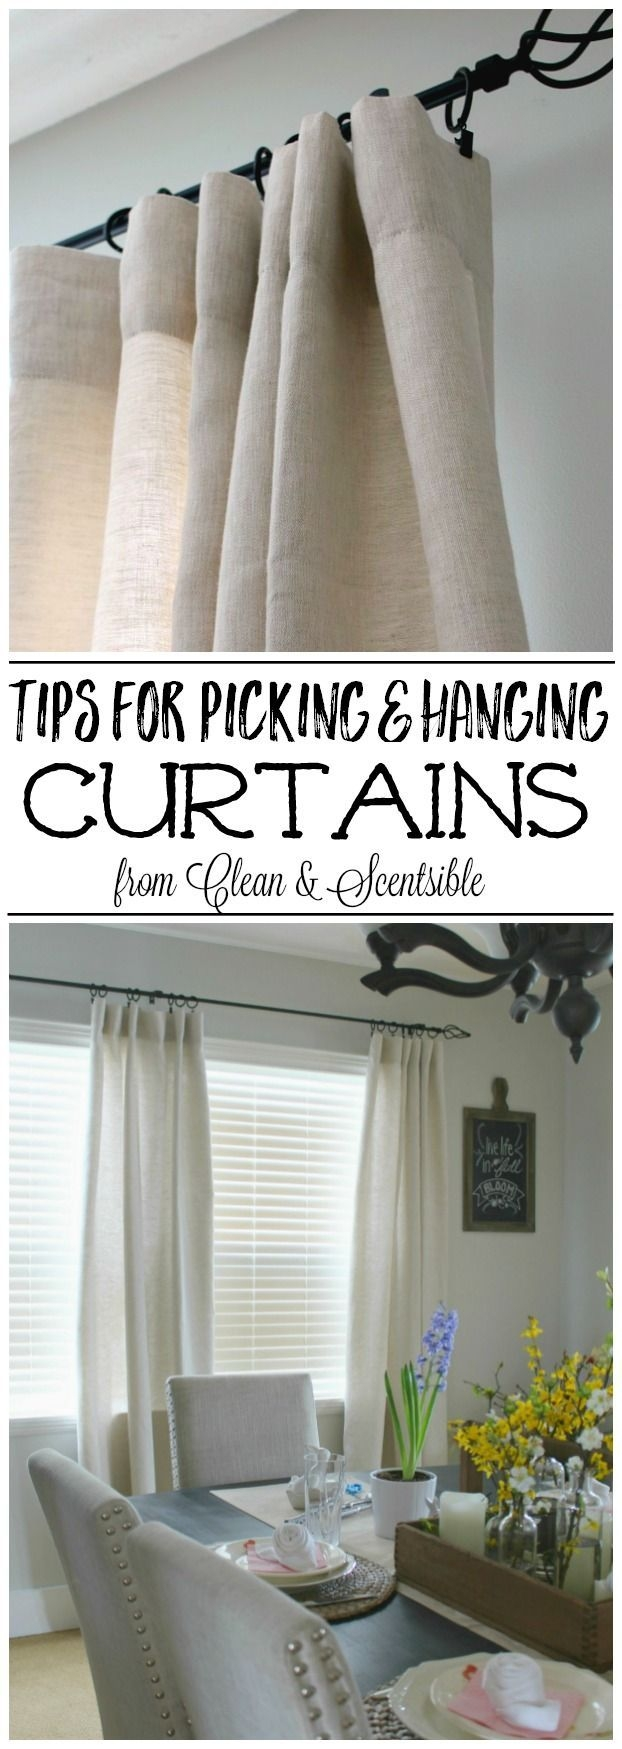 Best 25 How To Hang Curtains Ideas Only On Pinterest Hang For Hanging Curtains (View 13 of 25)